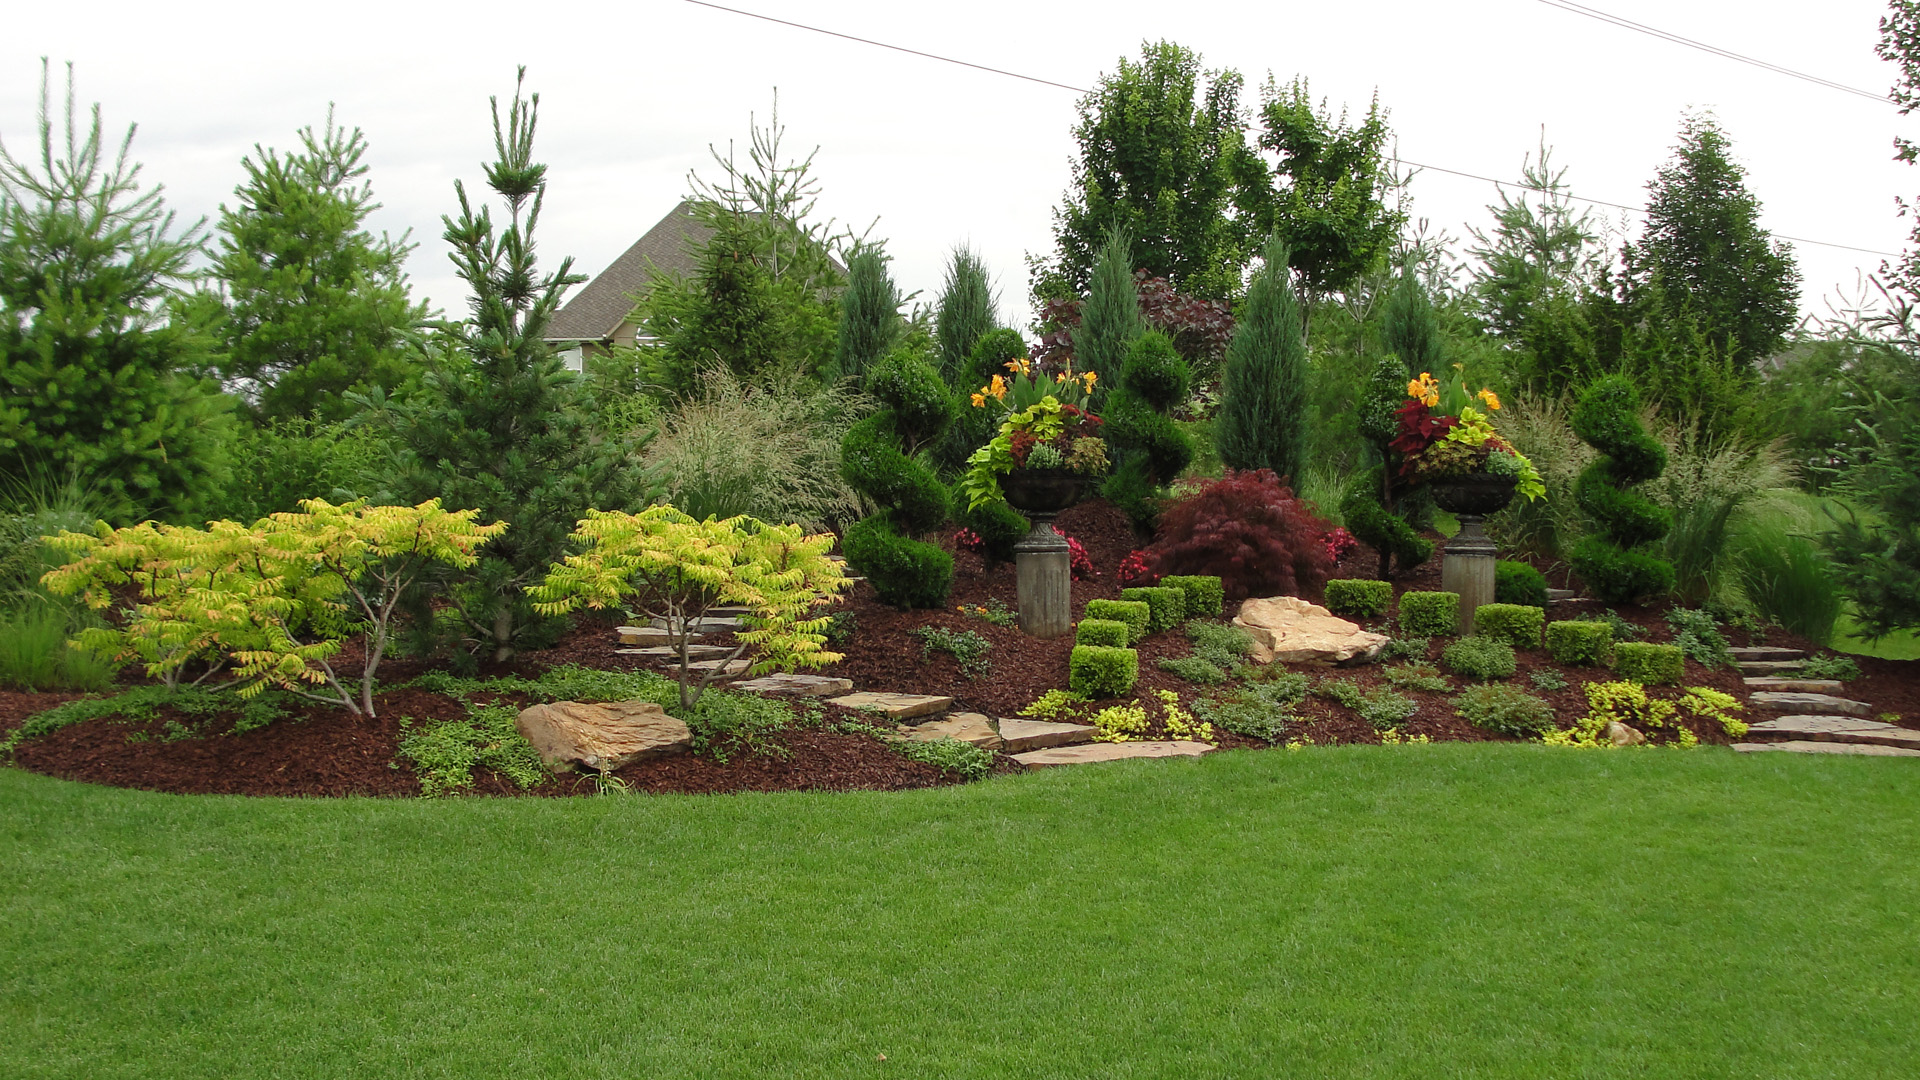 Gartengestaltung Ideen Hügel Professional Landscaping From Rosehill Gardens Of Kansas City